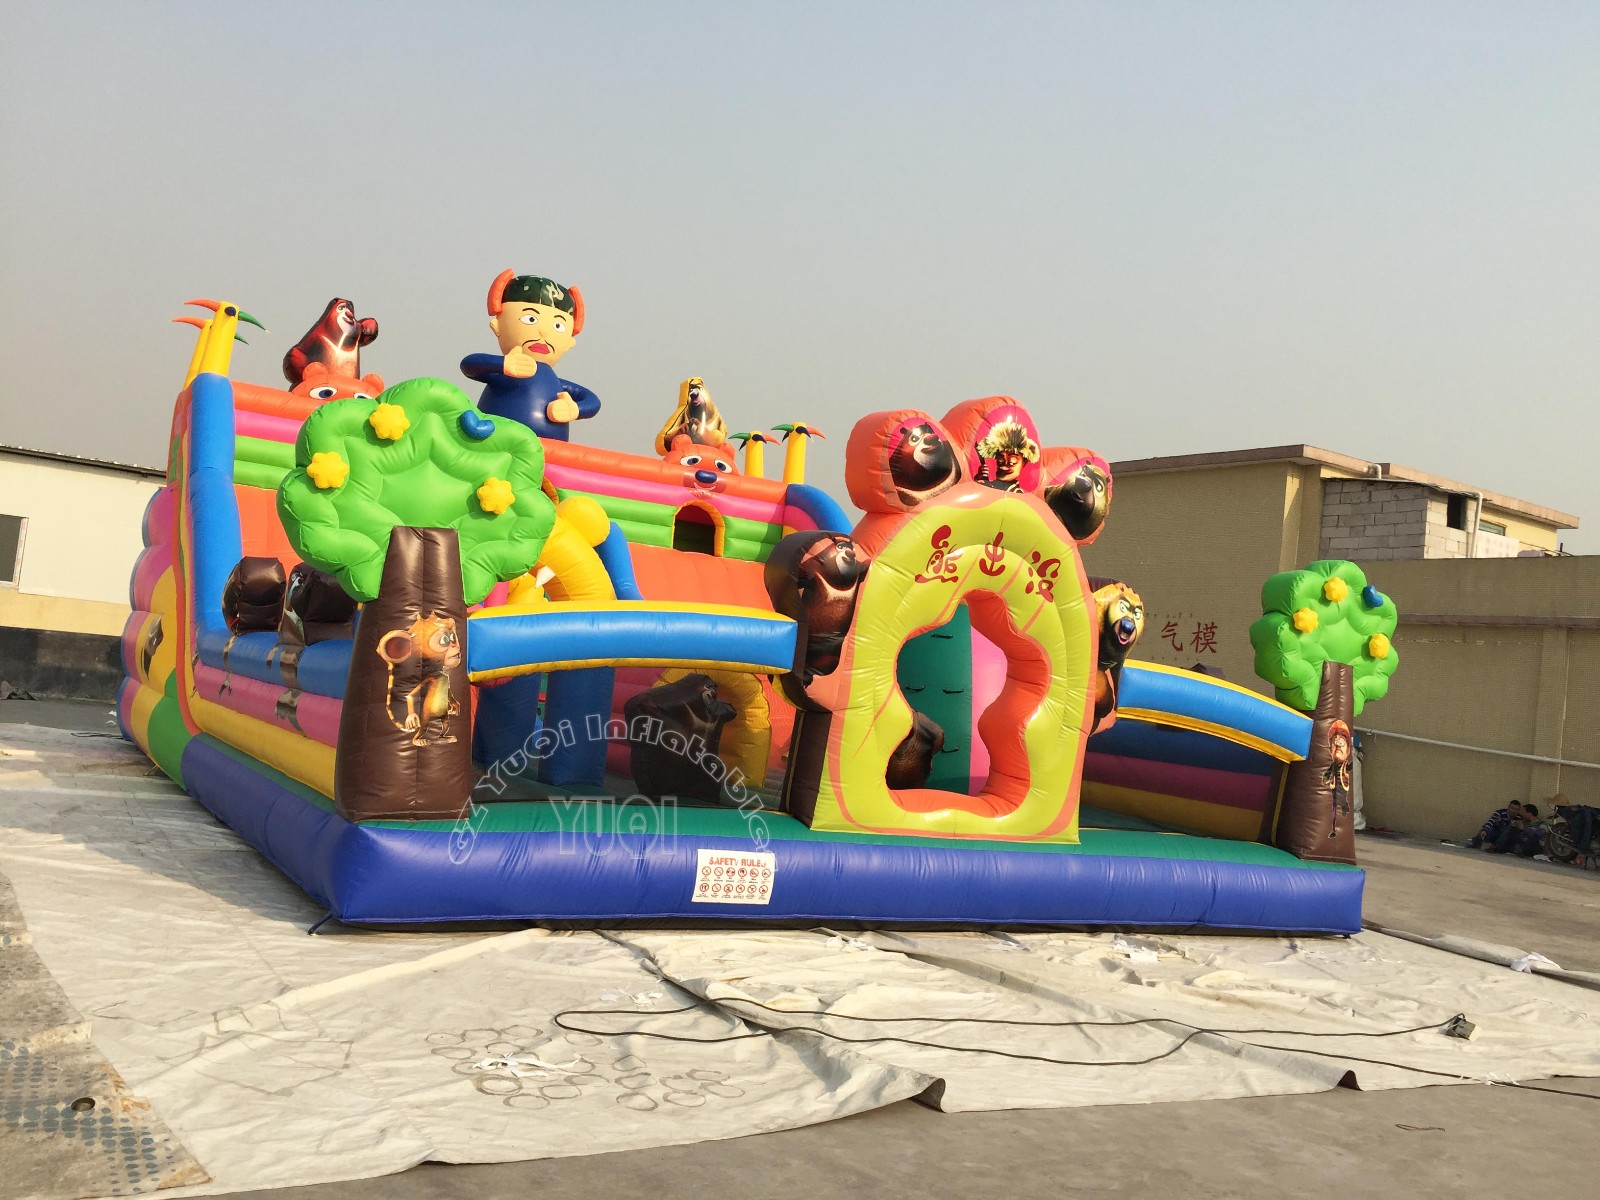 YUQI-China Outdoor Customized Hot Sale Funny Inflatable Theme Park